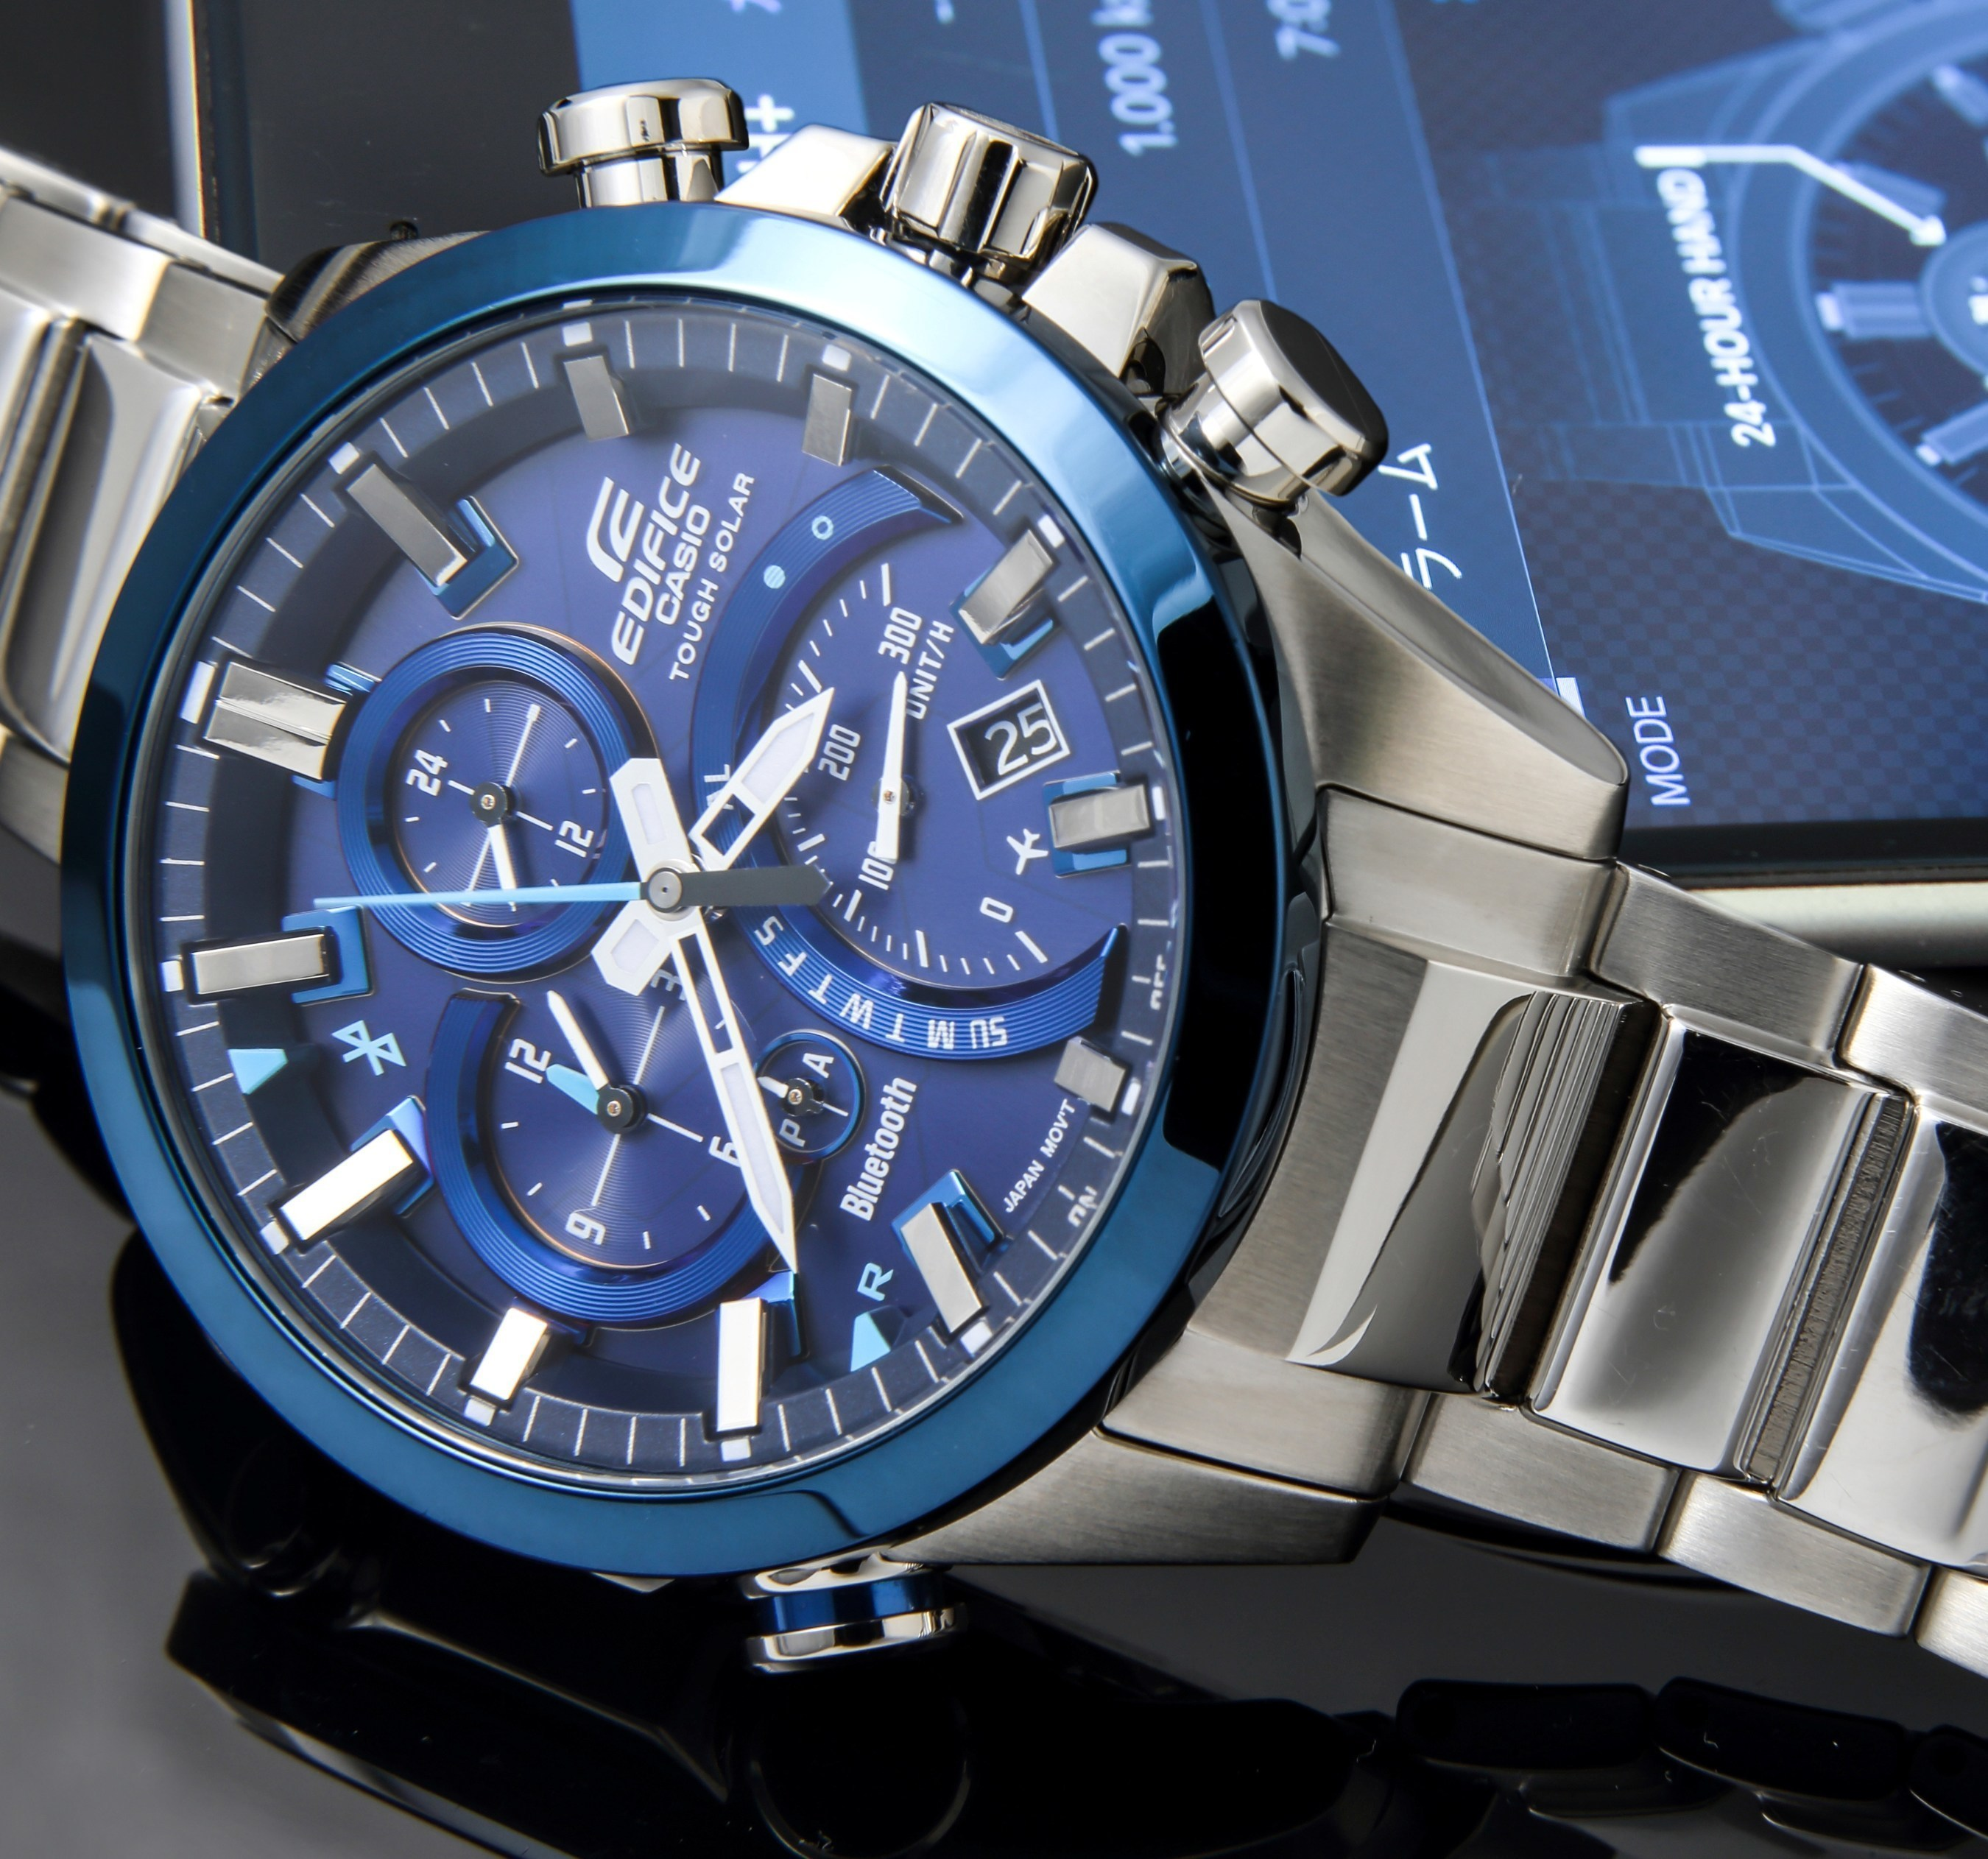 Casio Introduces Latest EDIFICE Timepiece With Smart Phone Link Technology